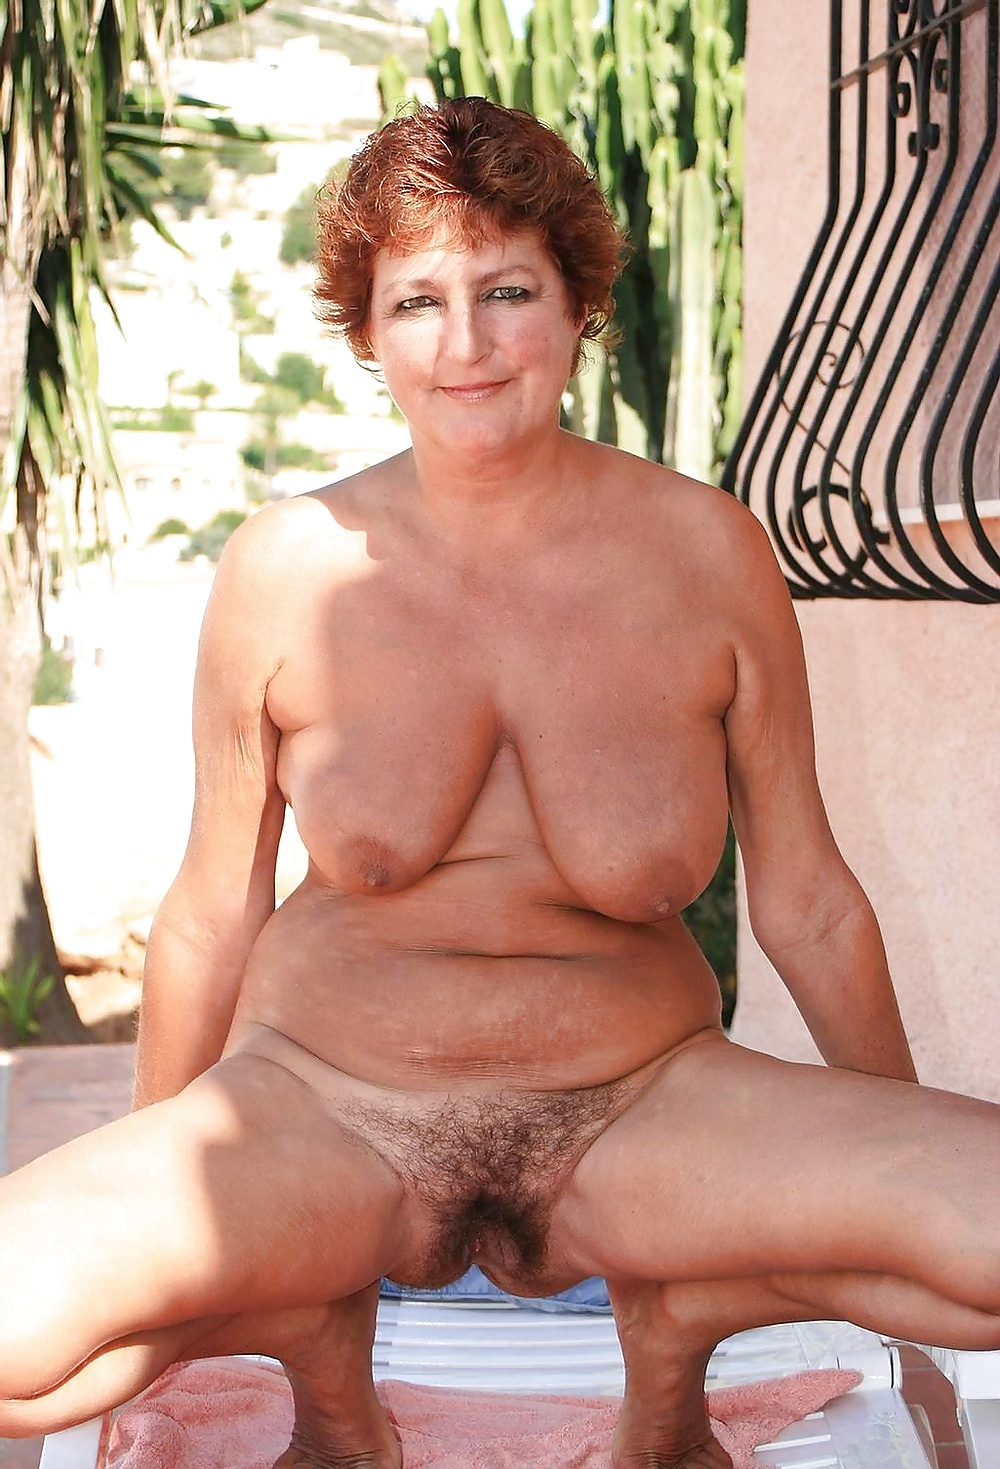 Very big boobs with hairy pussys are